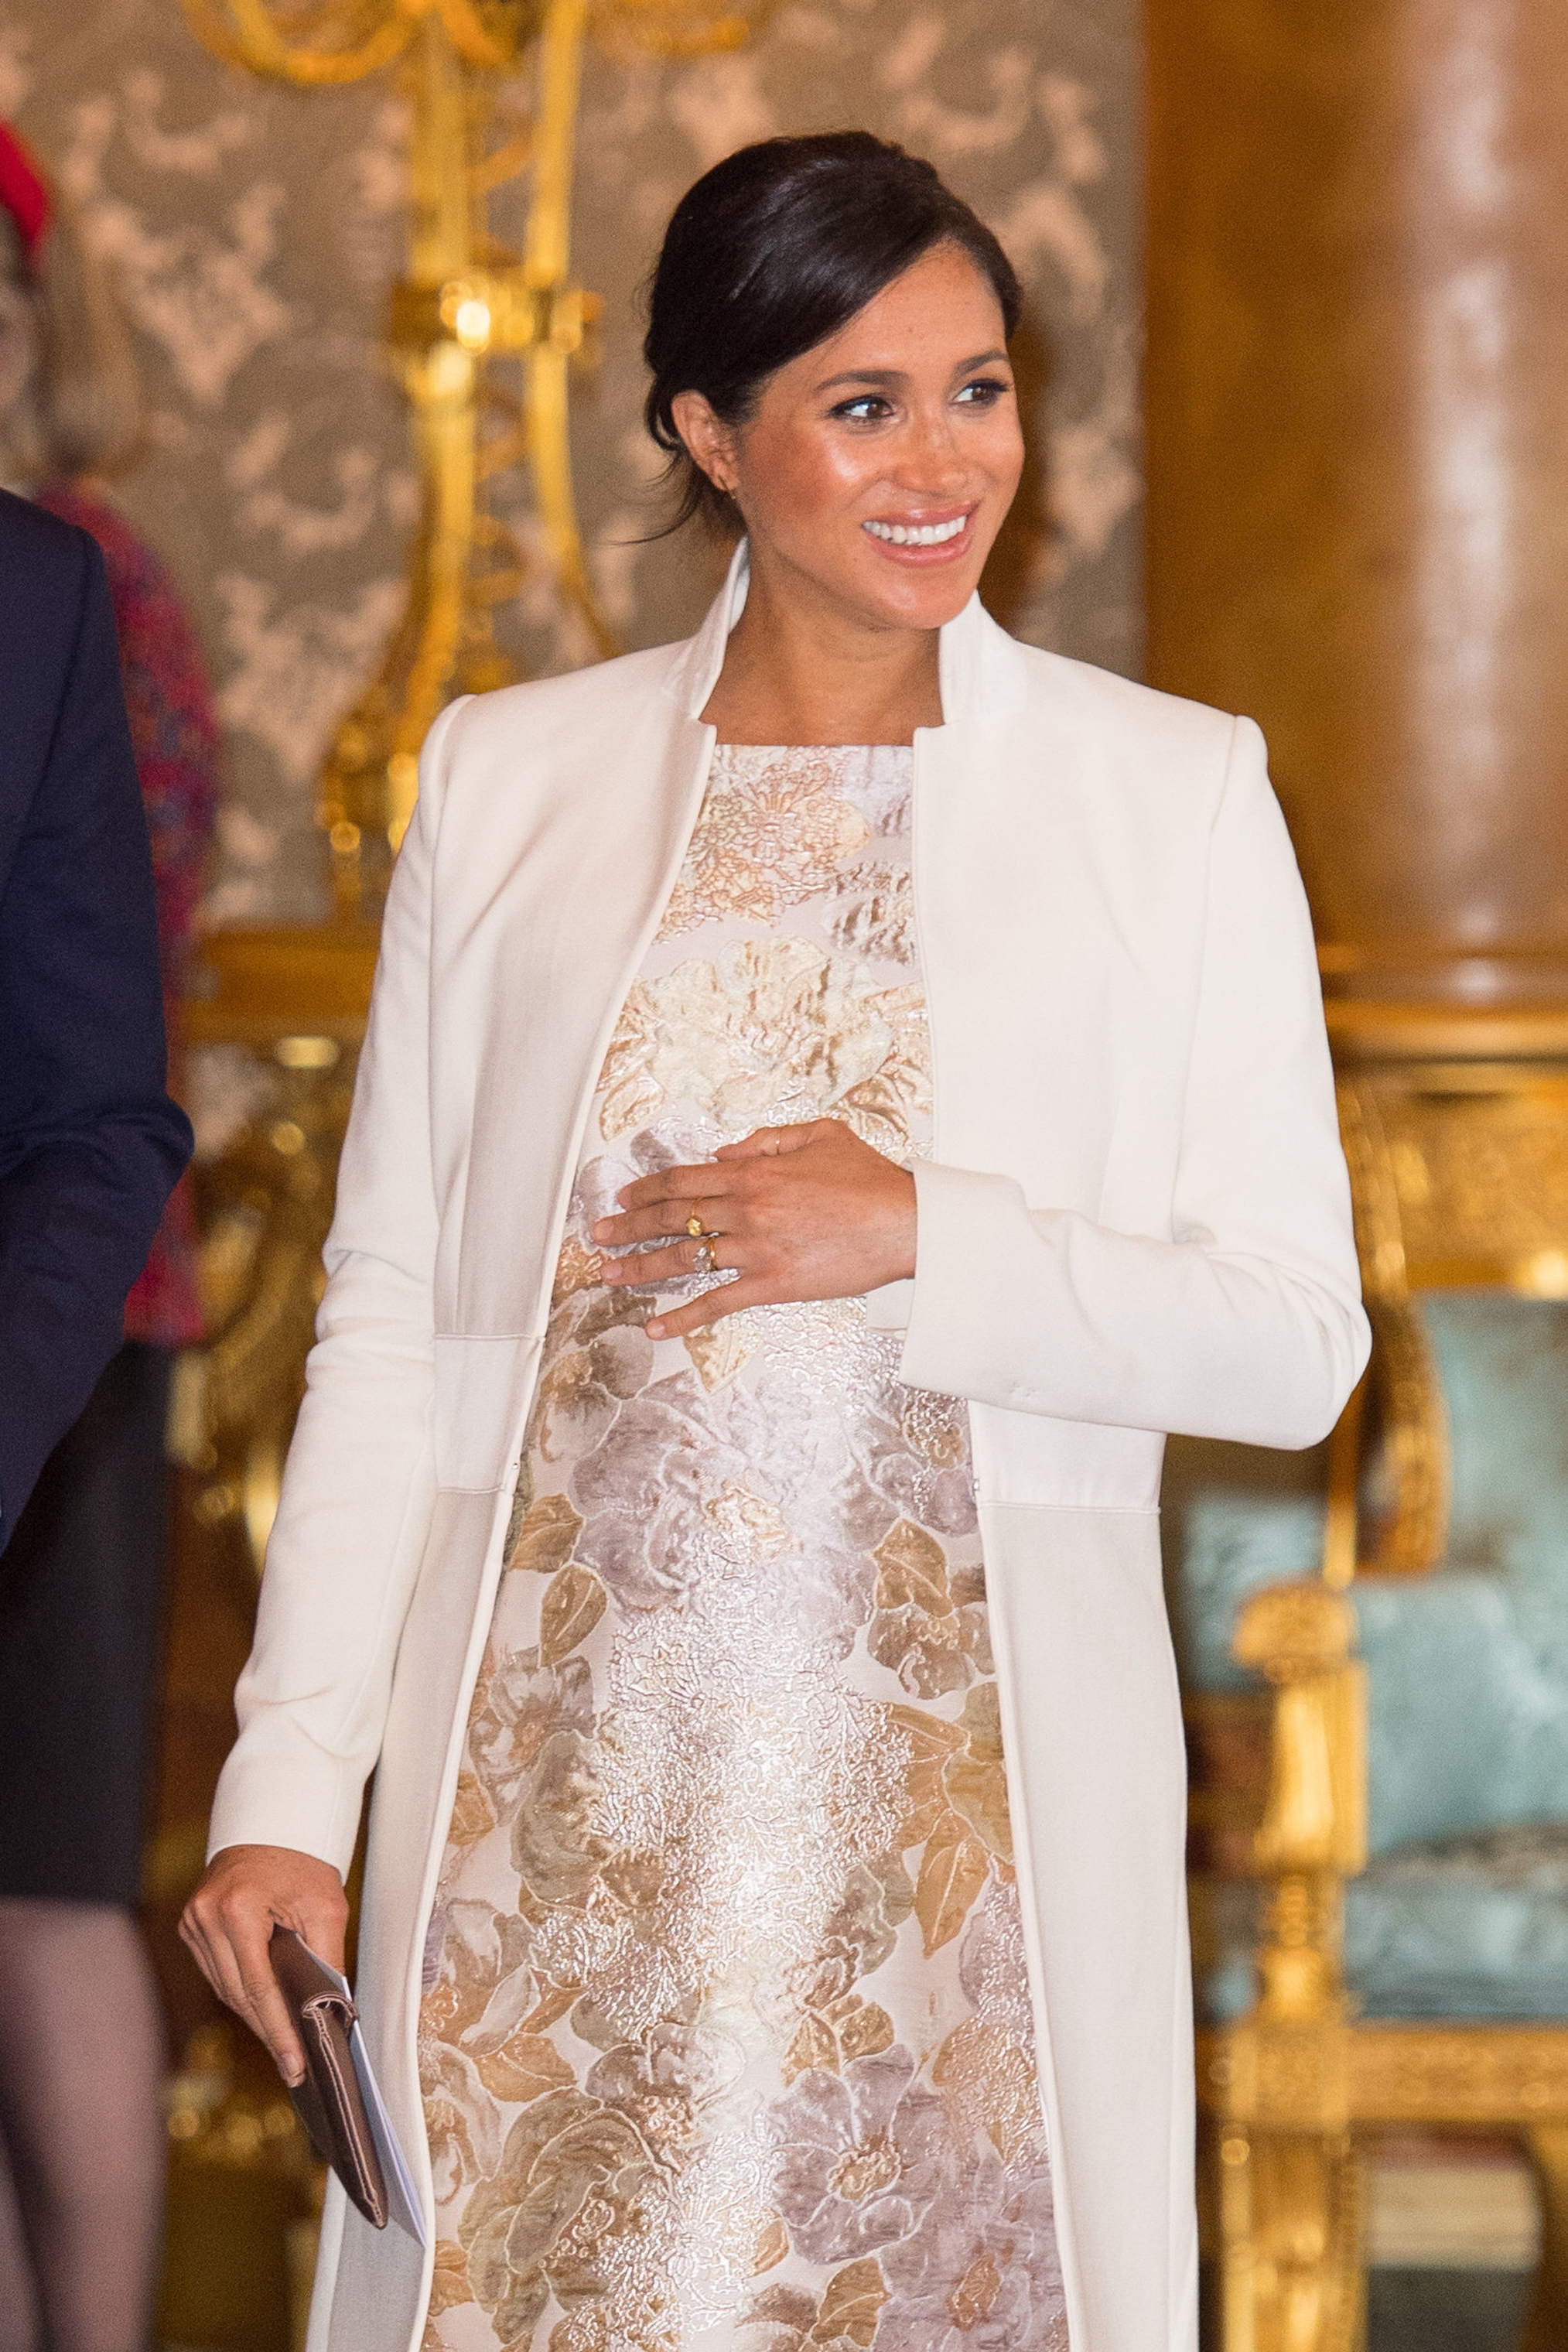 The Duchess of Sussex attends a reception at Buckingham Palace in London to mark the fiftieth anniversary of the investiture of the Prince of Wales.